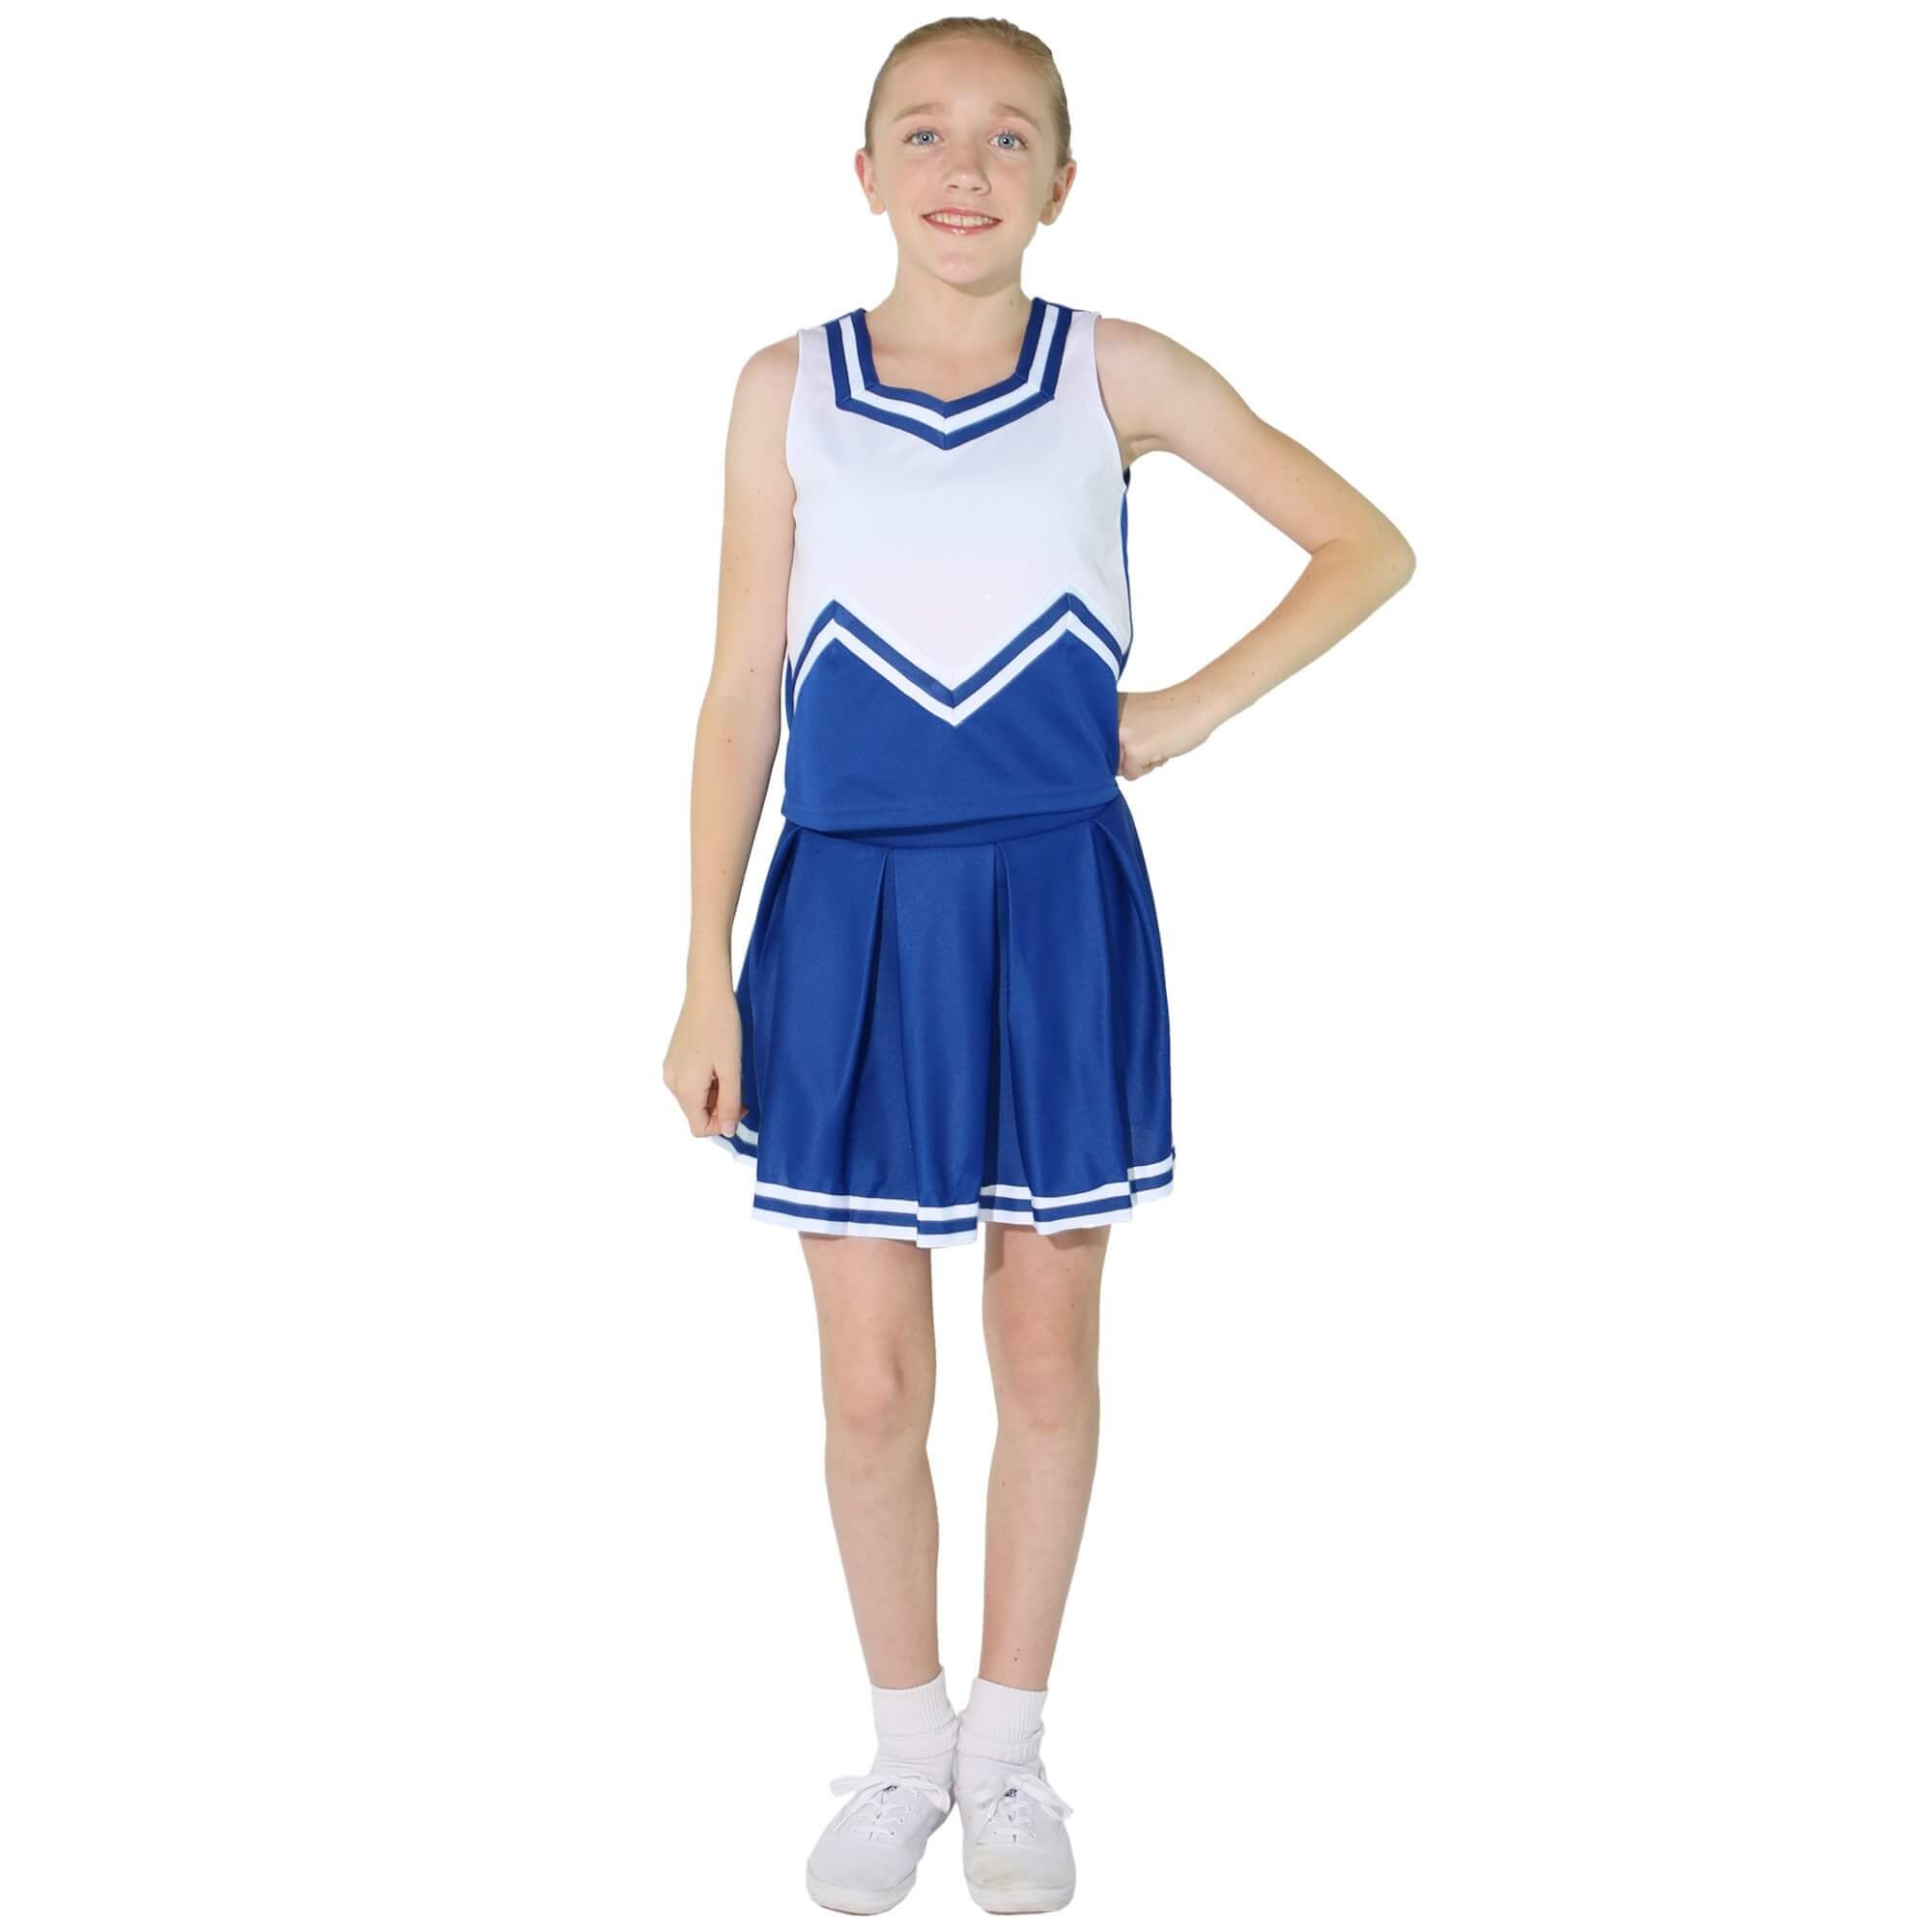 cheer uniforms cheerleading uniforms cheerleading